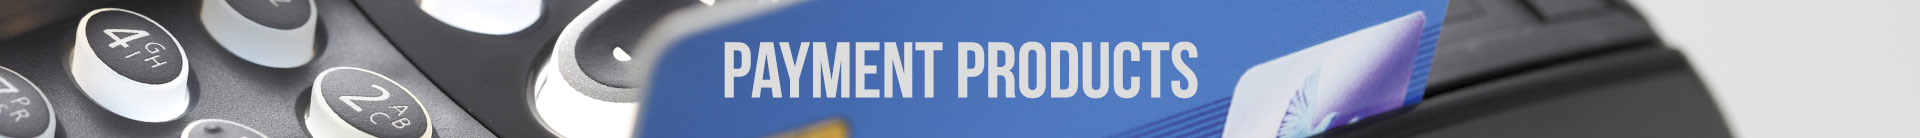 Products-Banner2